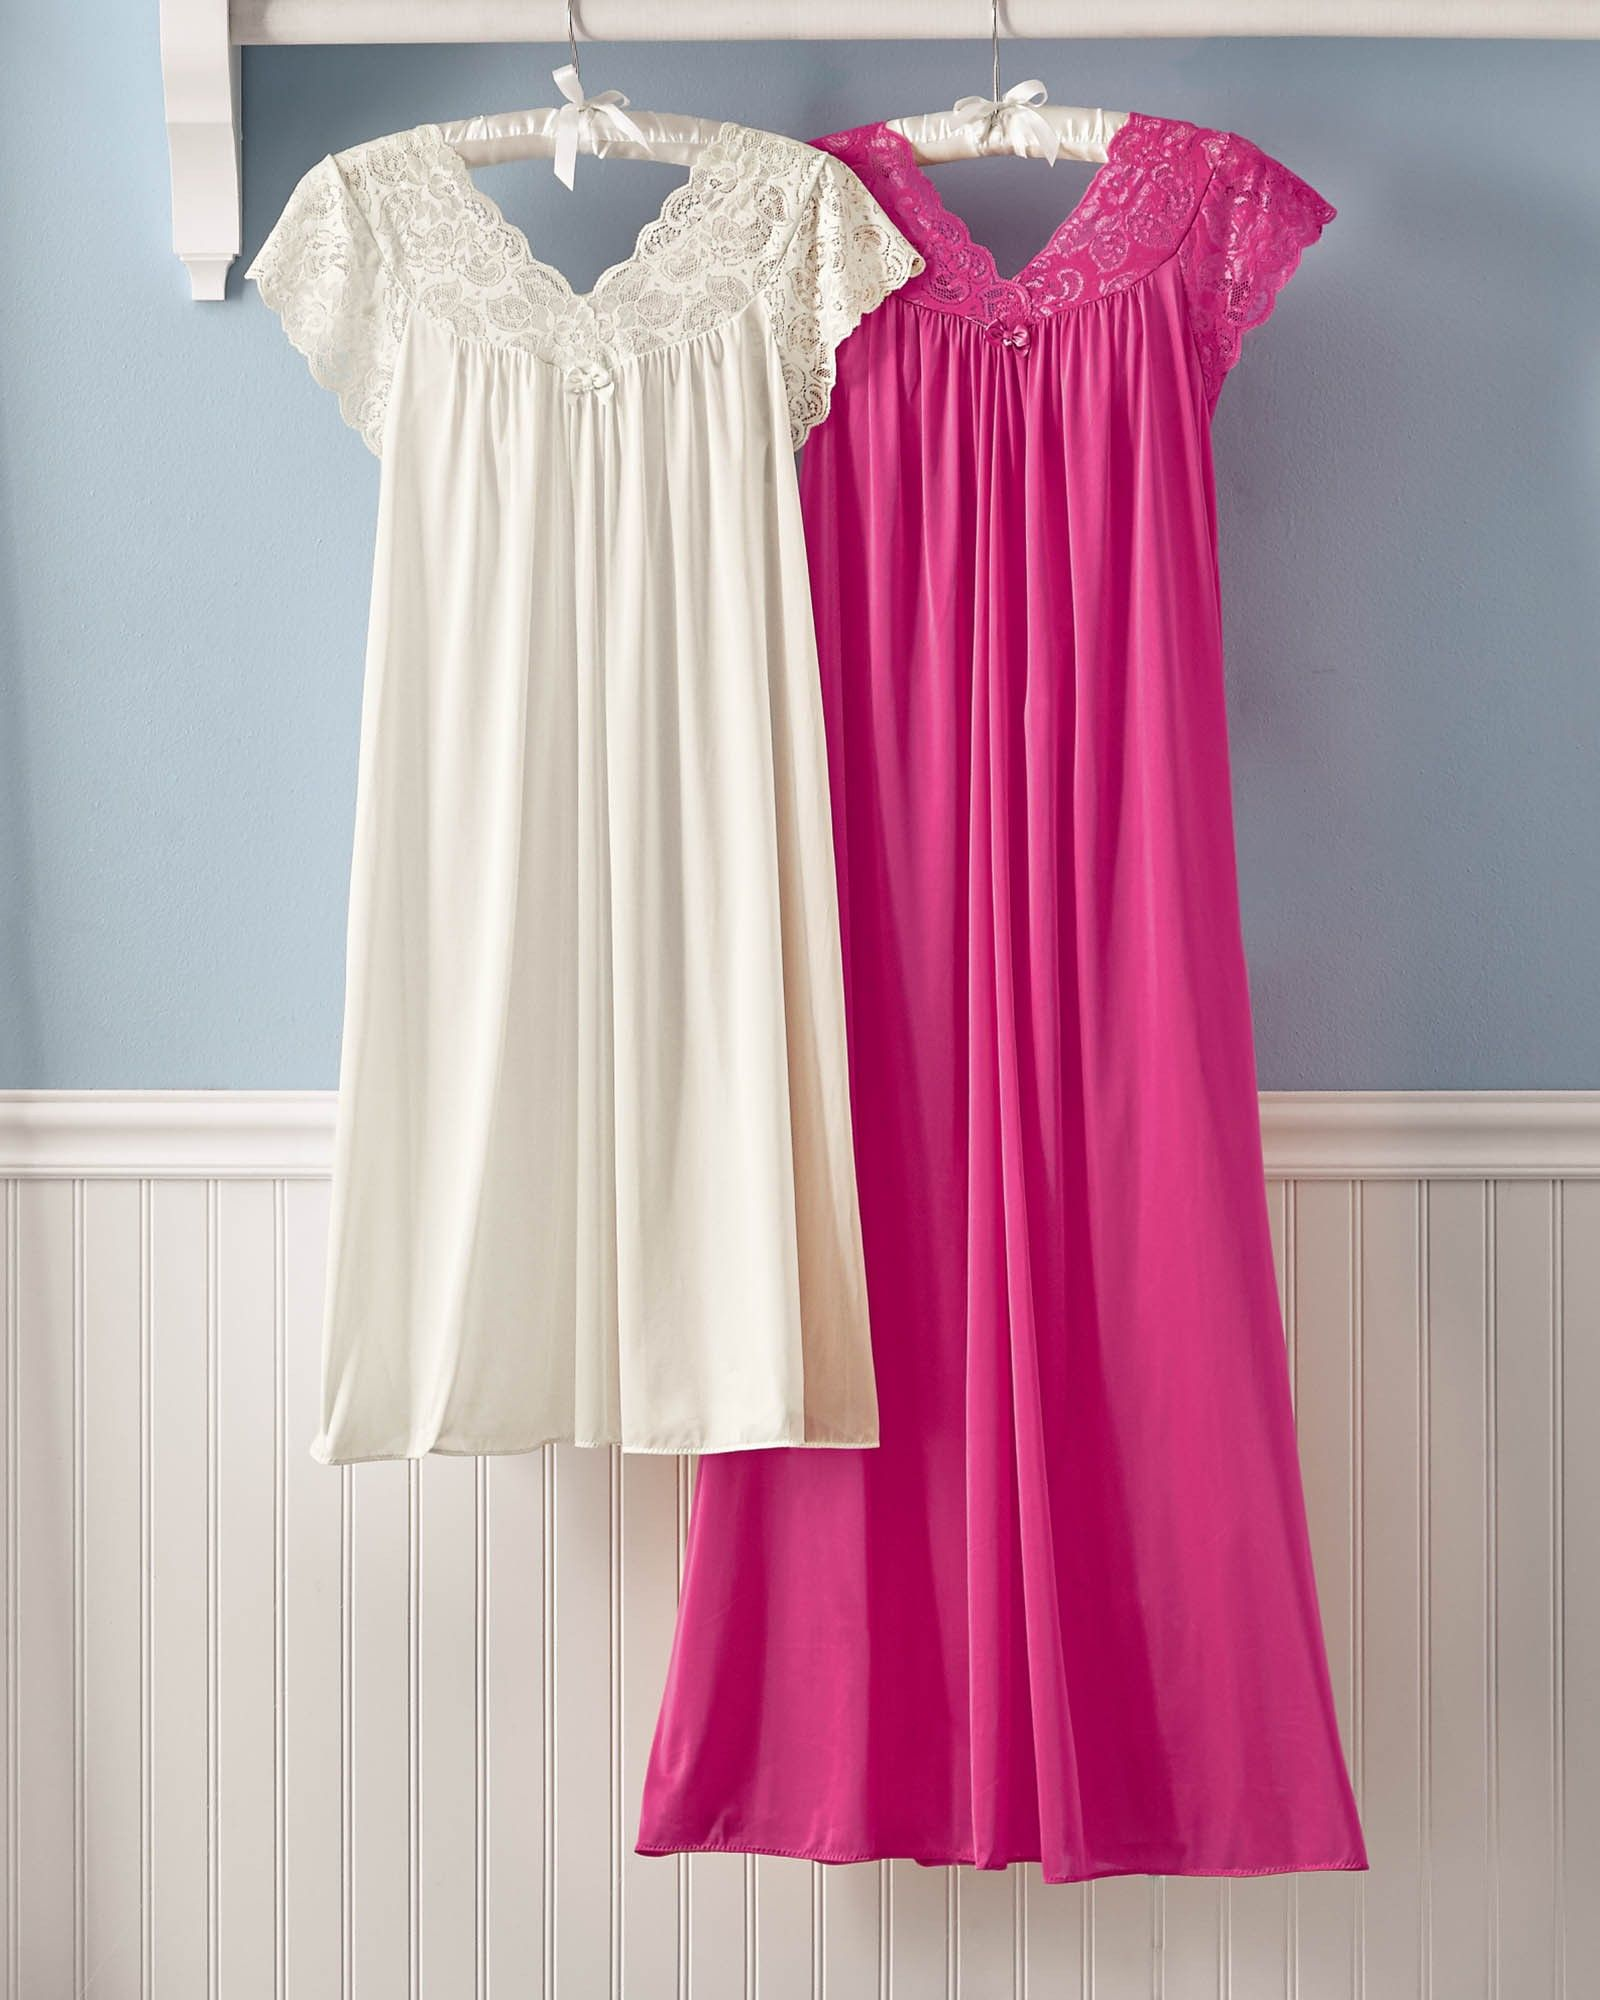 fafa7c76dbcca Silken Luxury Cap Sleeve Nightgown